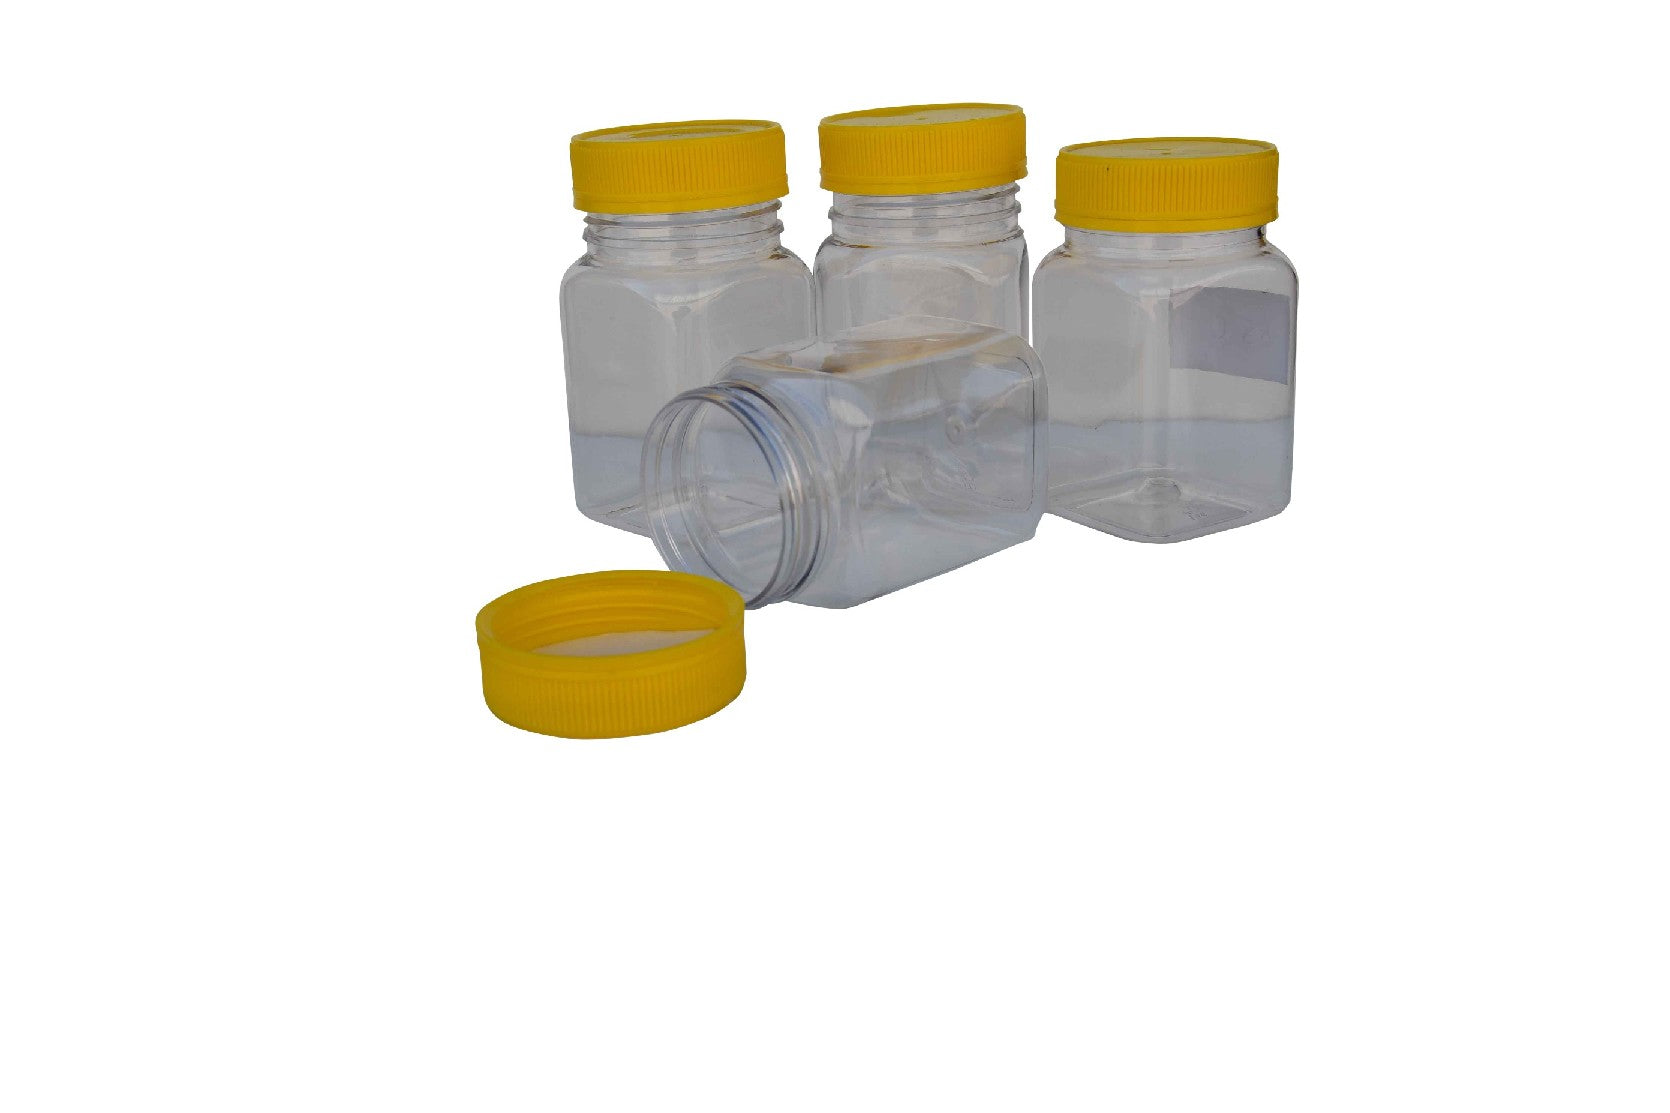 250 x Honey Containers 250 Grams